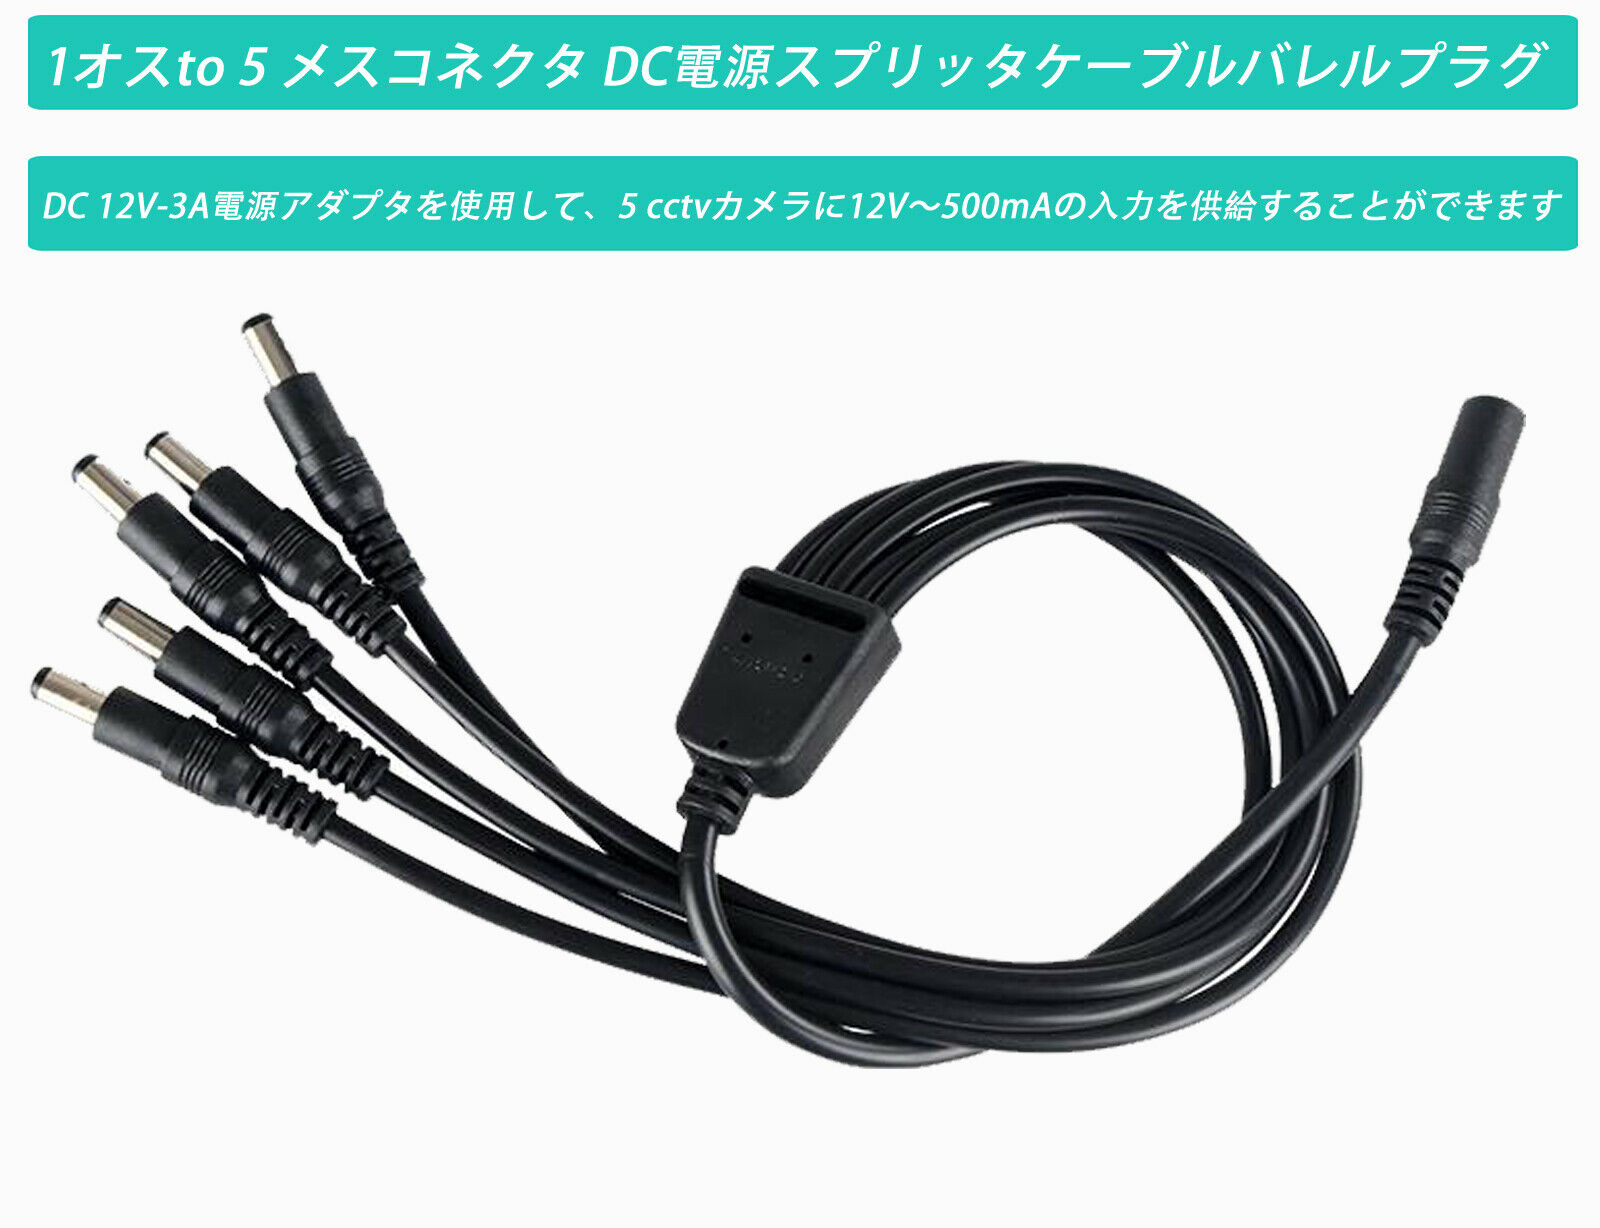 Japan Warehouse One-way One Female-male DC Power Splitter Y Shape Octopus For CCTV Camera Connection Code DVR NVR LED Light Strip